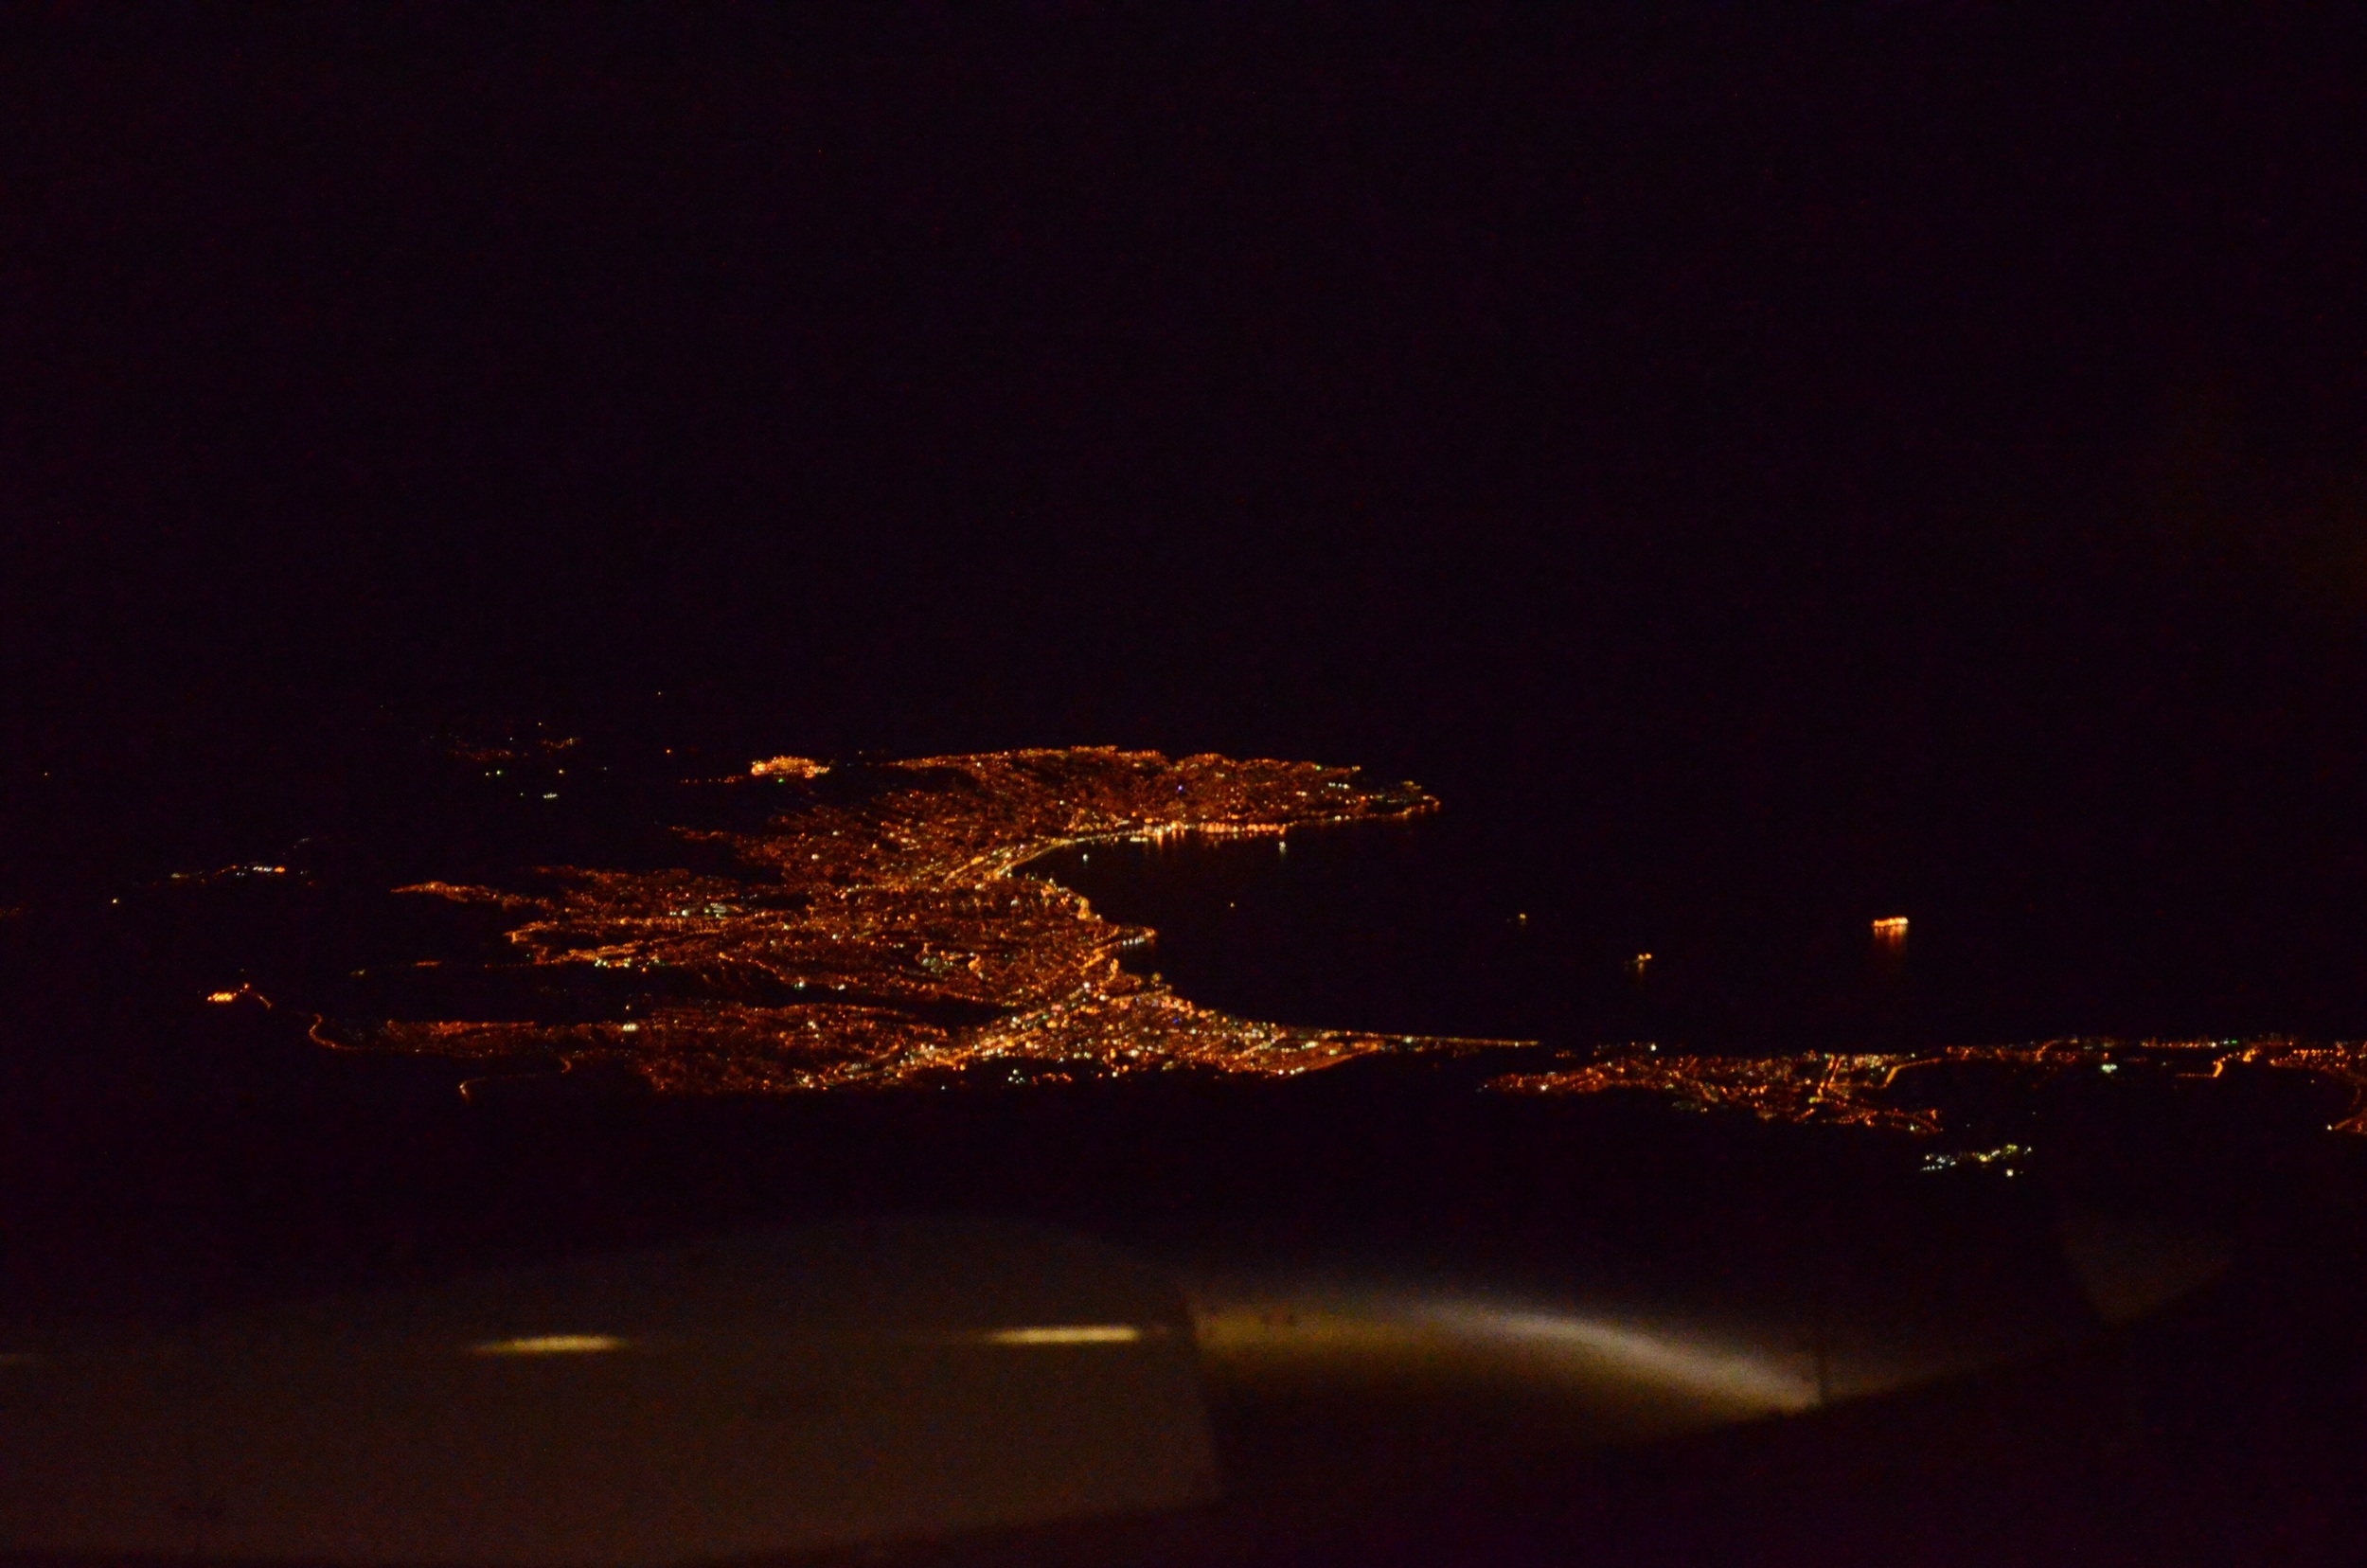 Coast town lights at night from the plane (I'm guessing they're Valparaiso and Viña del Mar) // 3 april 2015